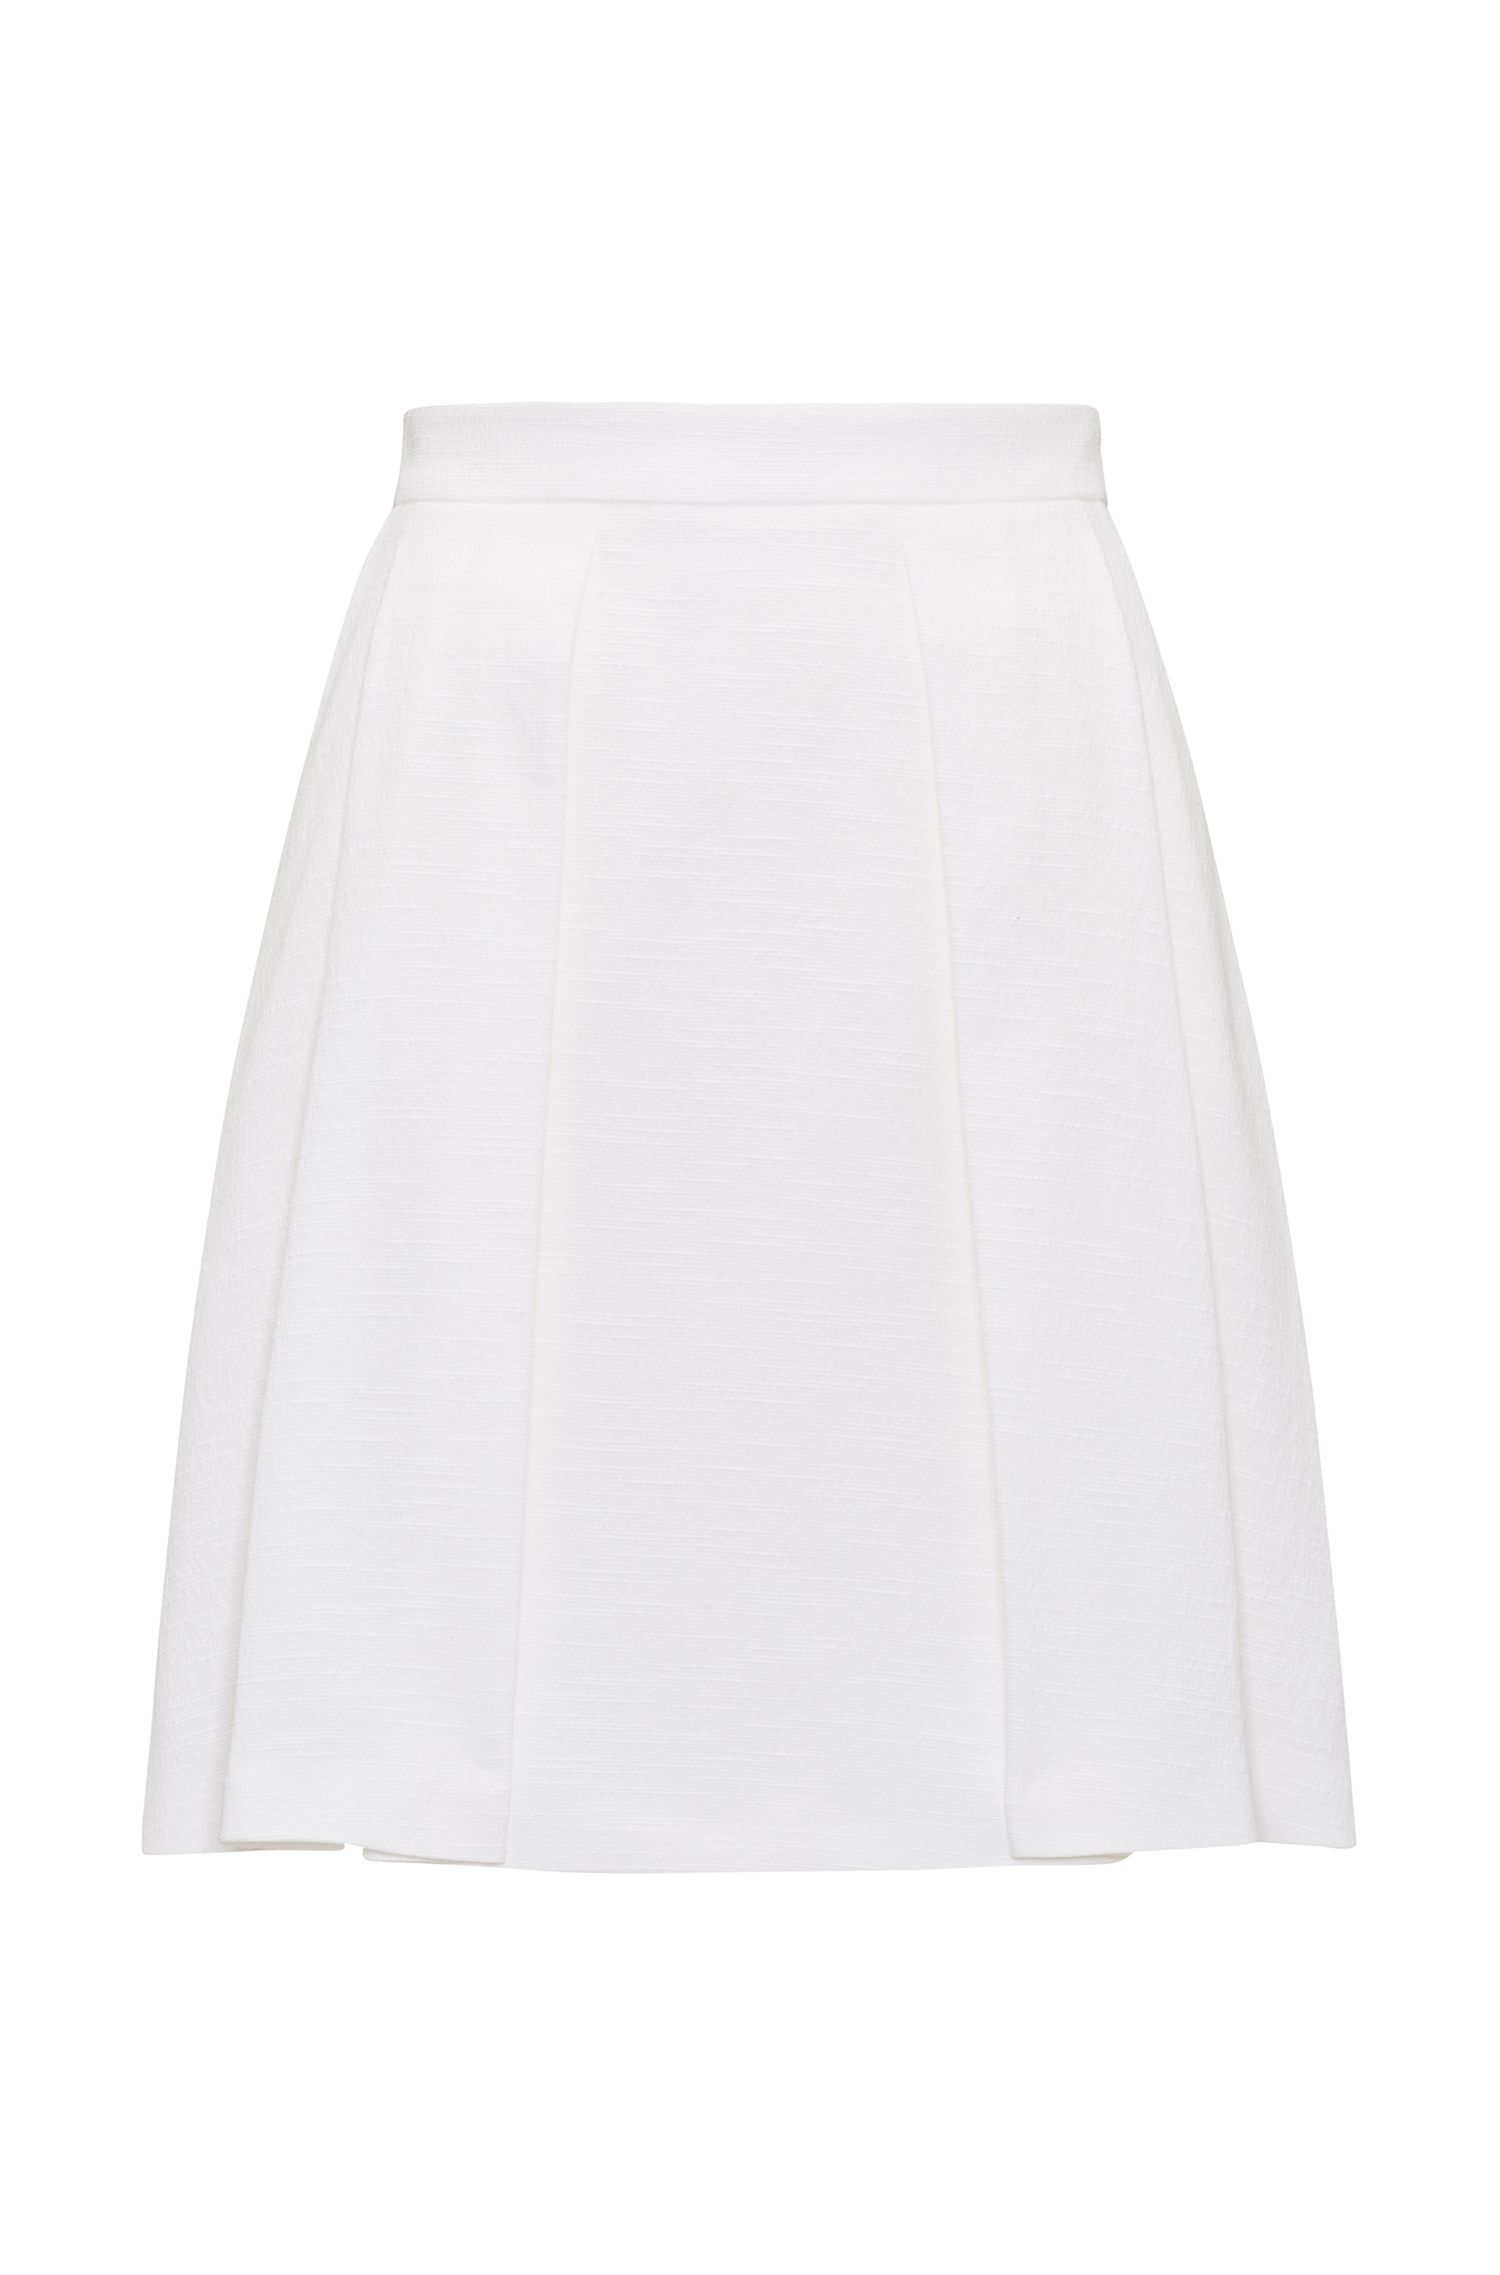 A-line pleated skirt in a cotton blend